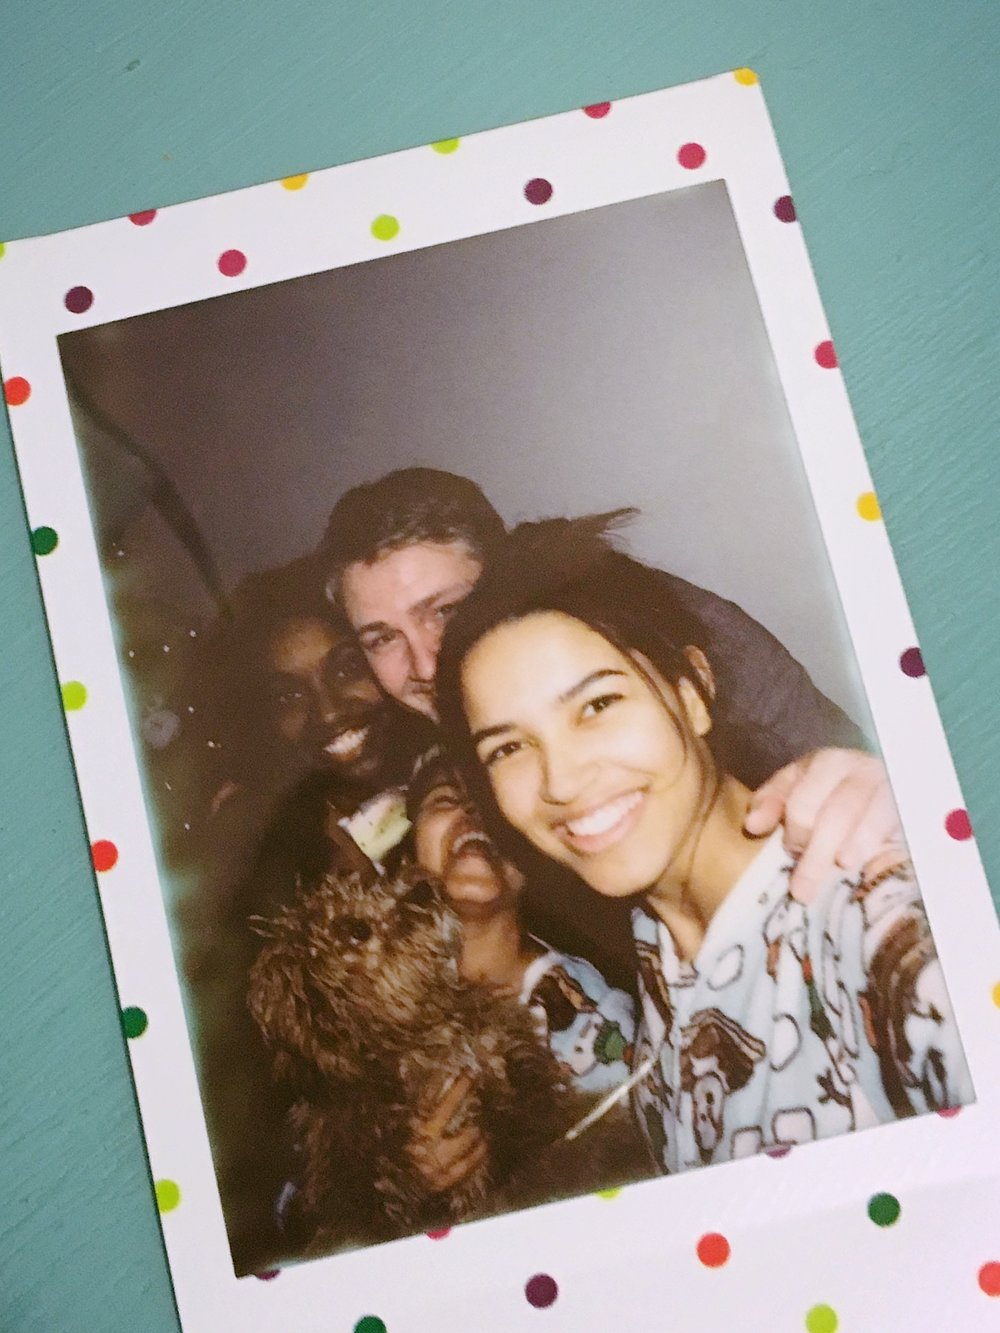 New Years Eve 2017 - NYC +++ It may be blurry and over exposed, but this polaroid is the one I love most - a moment of us, just as it was.